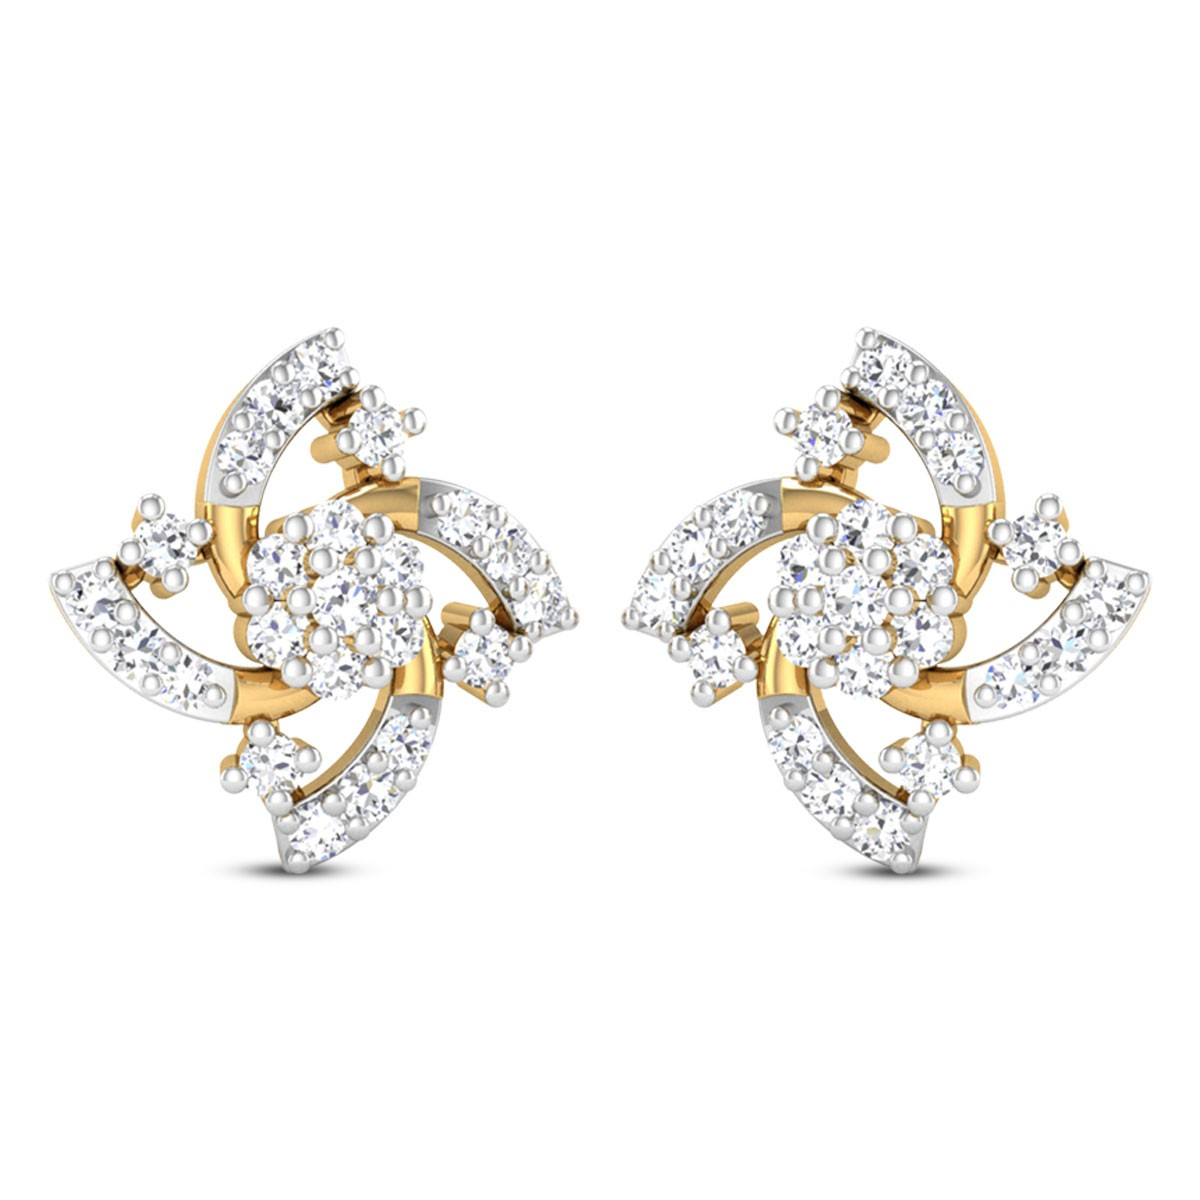 Moratalia Diamond Earrings